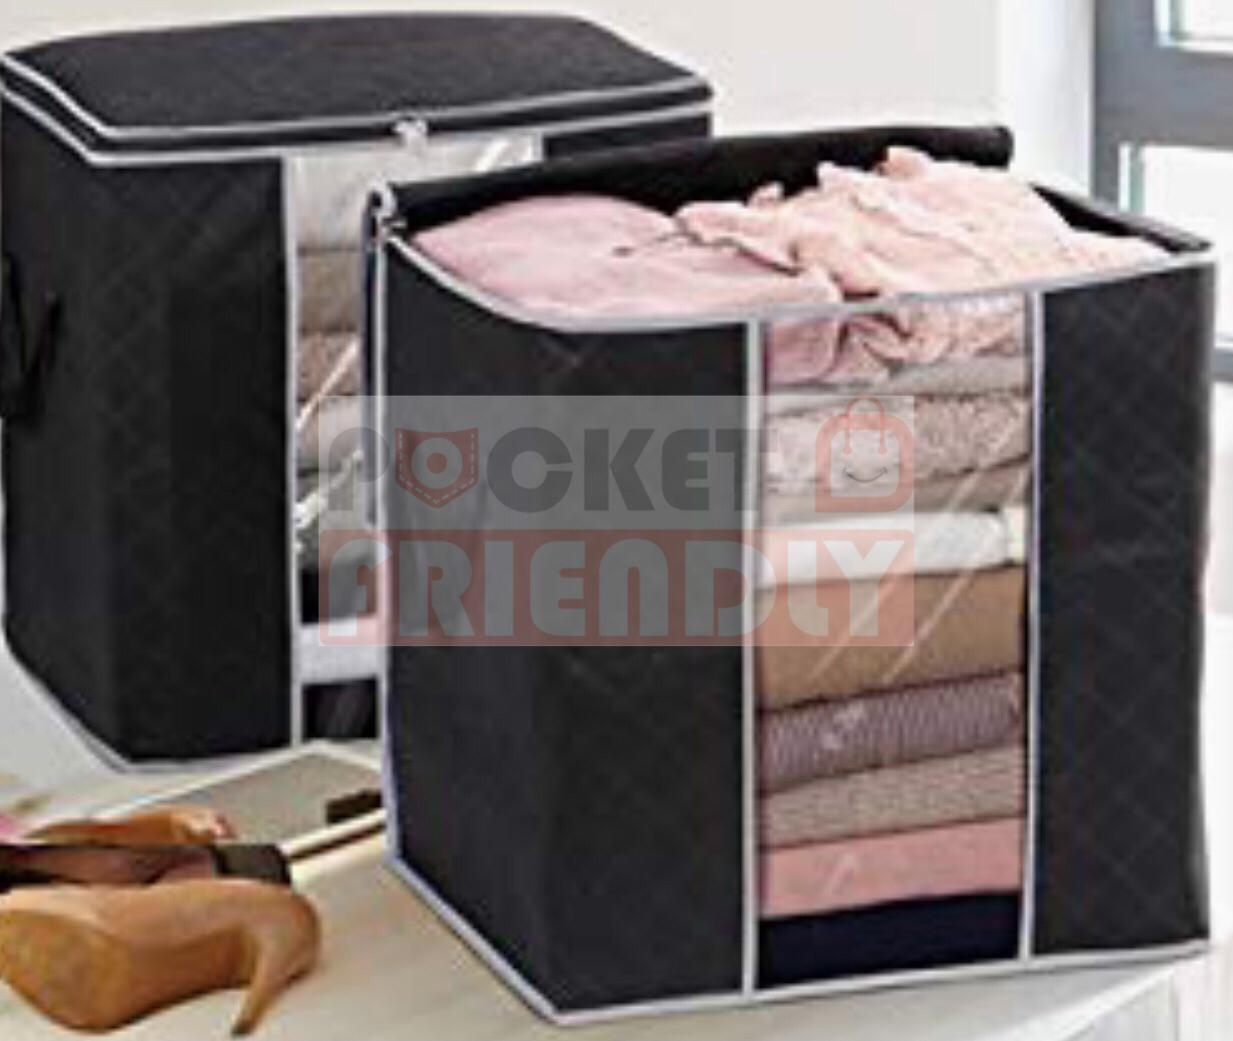 Pack Of 6 Waterproof Storage Bag Closet Organizer home portable space saver large capacity with Clear Window, Reinforced handle Cloth Box for Wardrobe organizer Pillow Quilt Bedding dual Zipper Bag Camping Equipment Travel bin topsky storage boxes